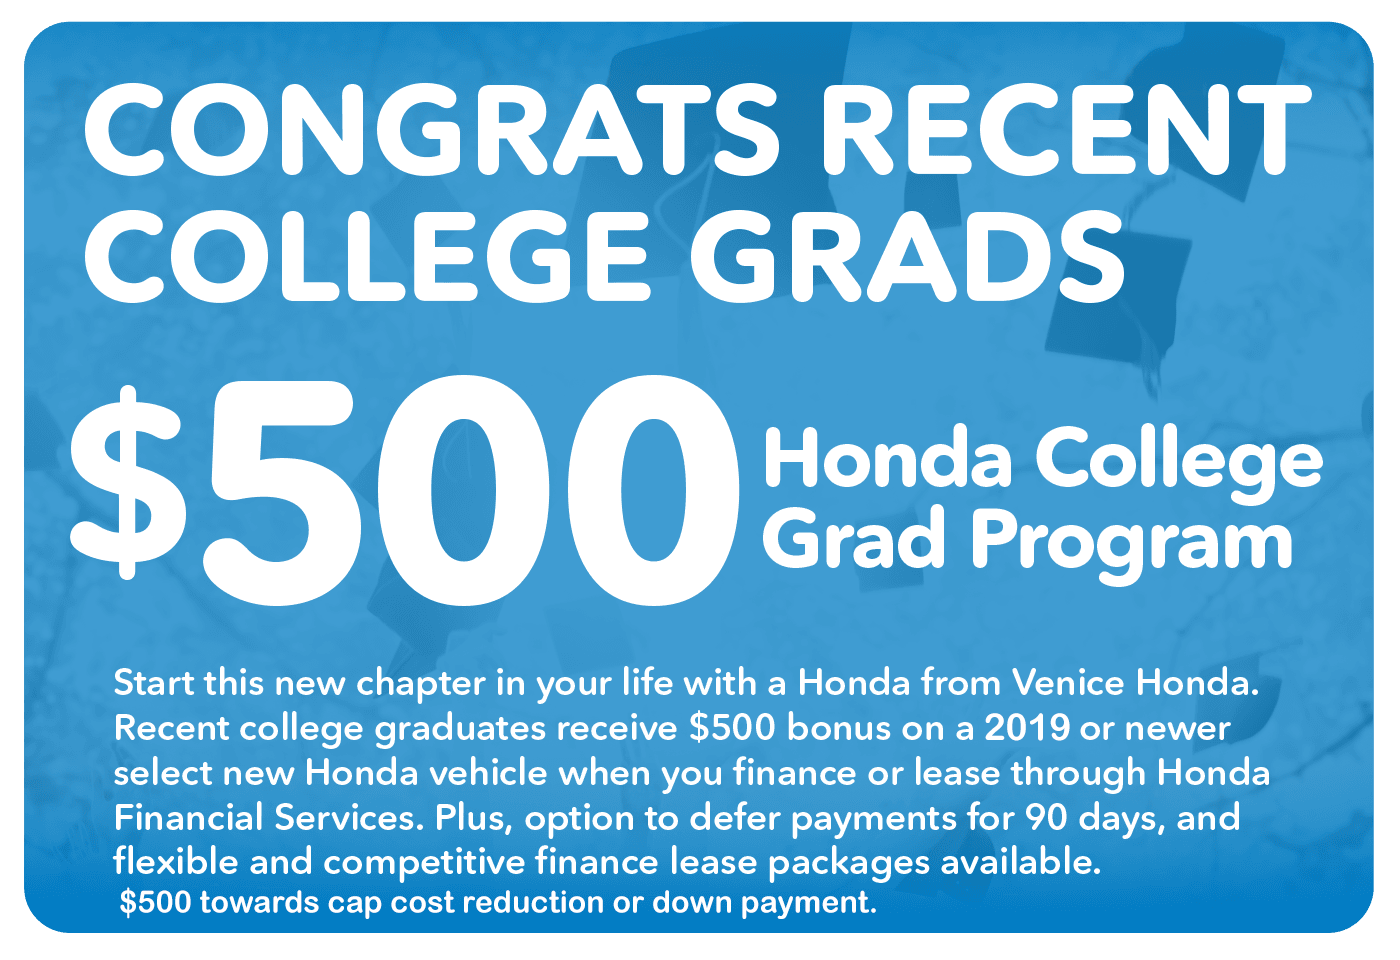 Congrats Recent College Grads. Receive $500 rebate with the Honda College Grad Program.